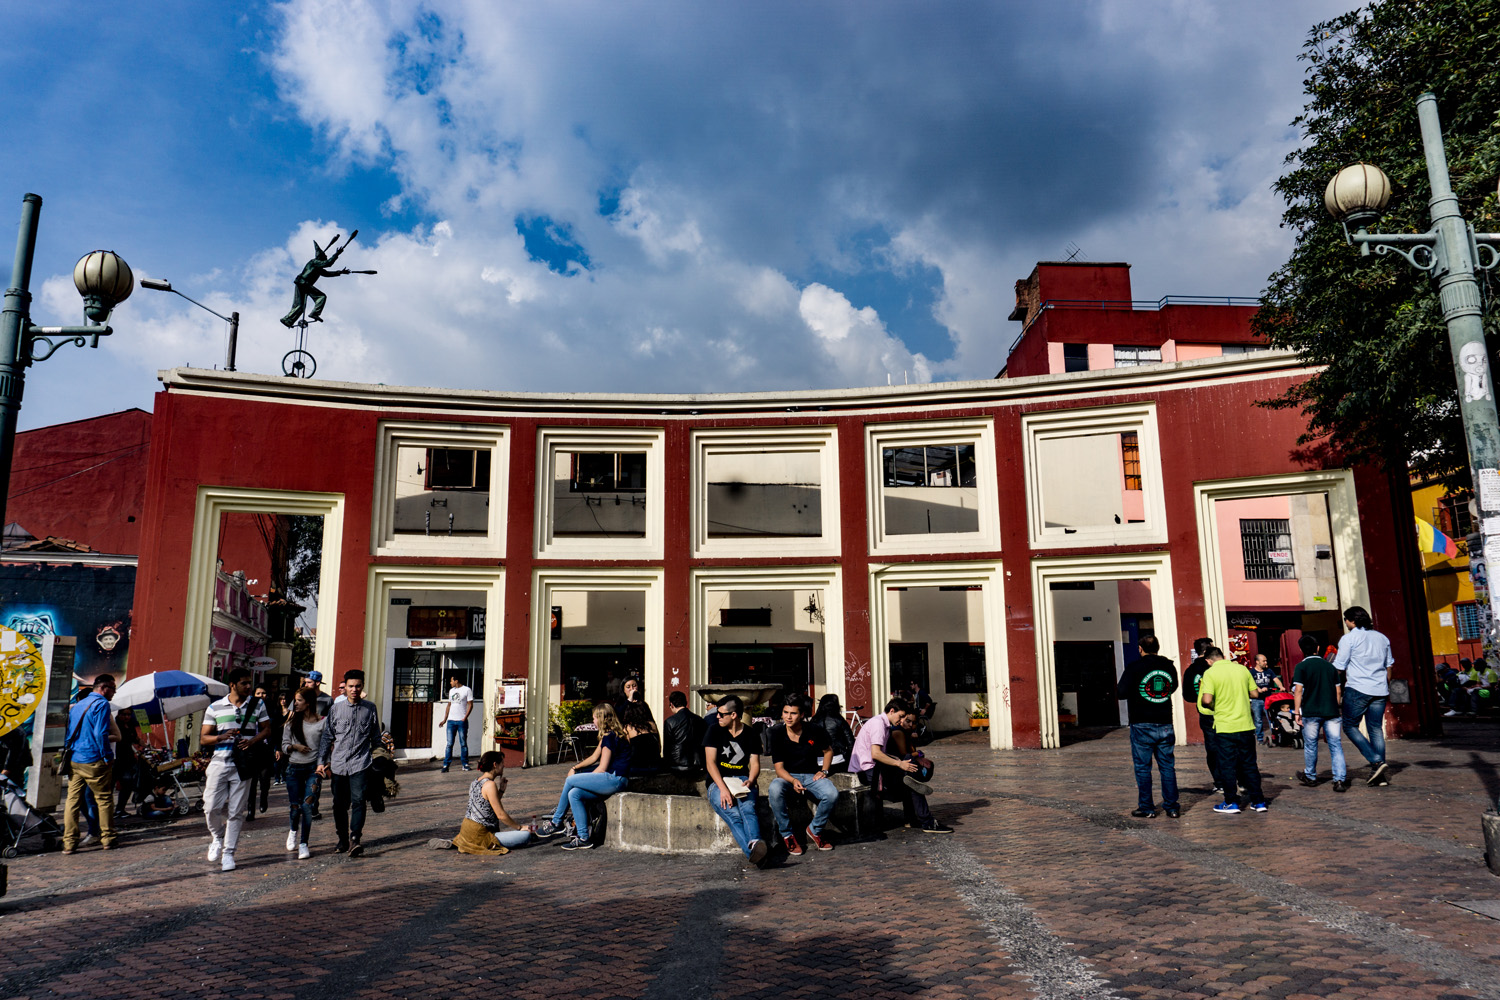 Chorro de Quevedo, Plaza in Candelaria district, Bogotá.